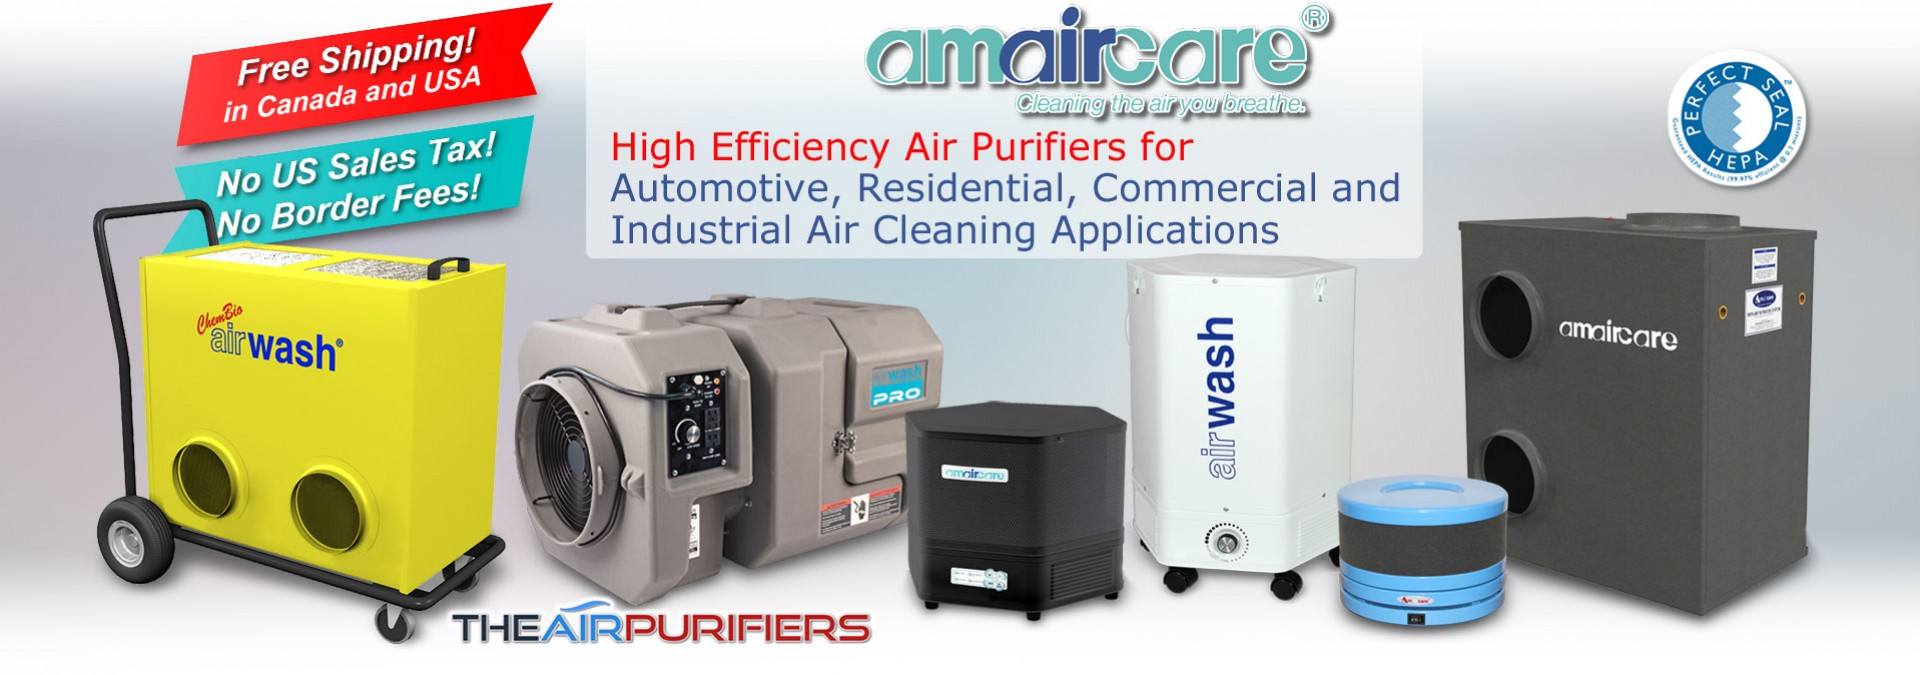 Amaircare Air Purifiers for All Air Purifier Needs